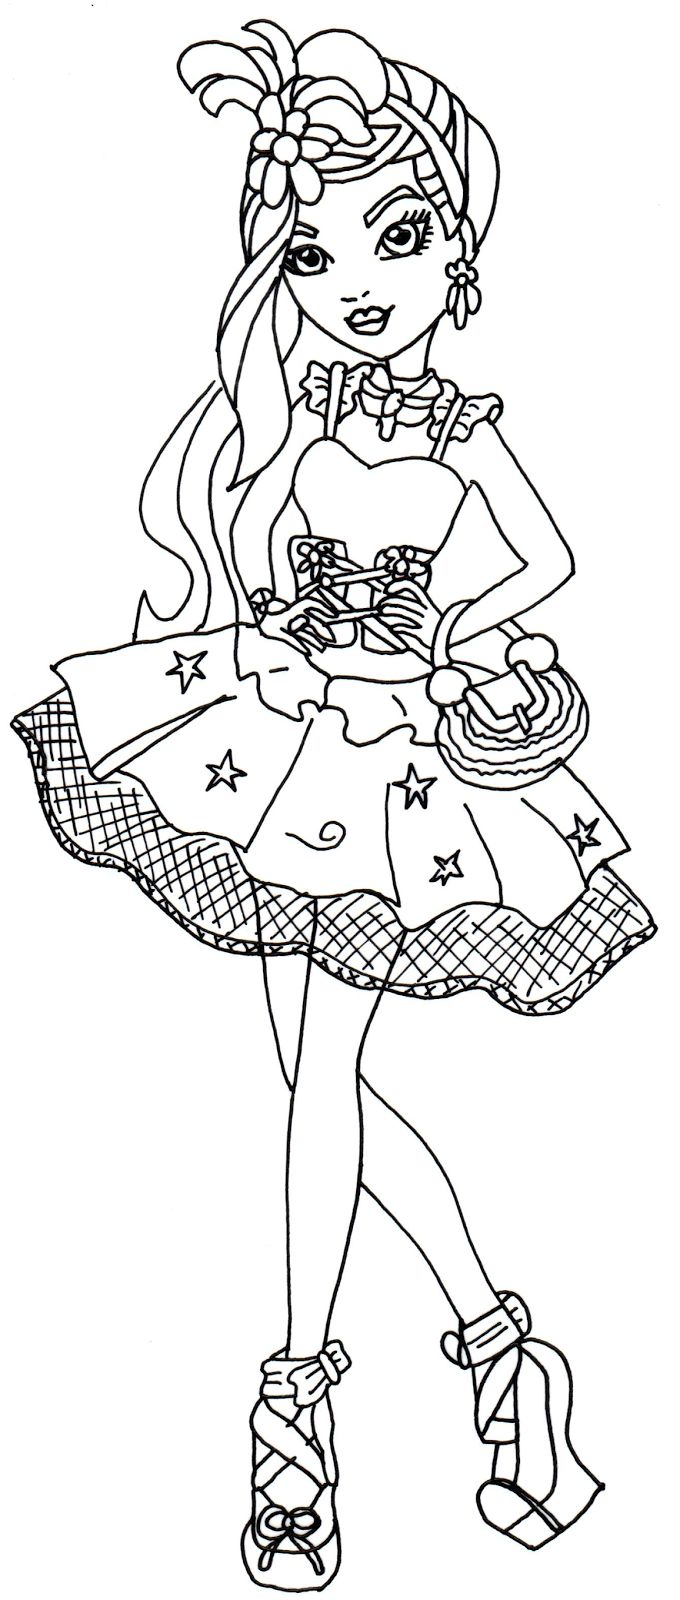 29 best Monster High Coloring Pages images on Pinterest | Coloring ...